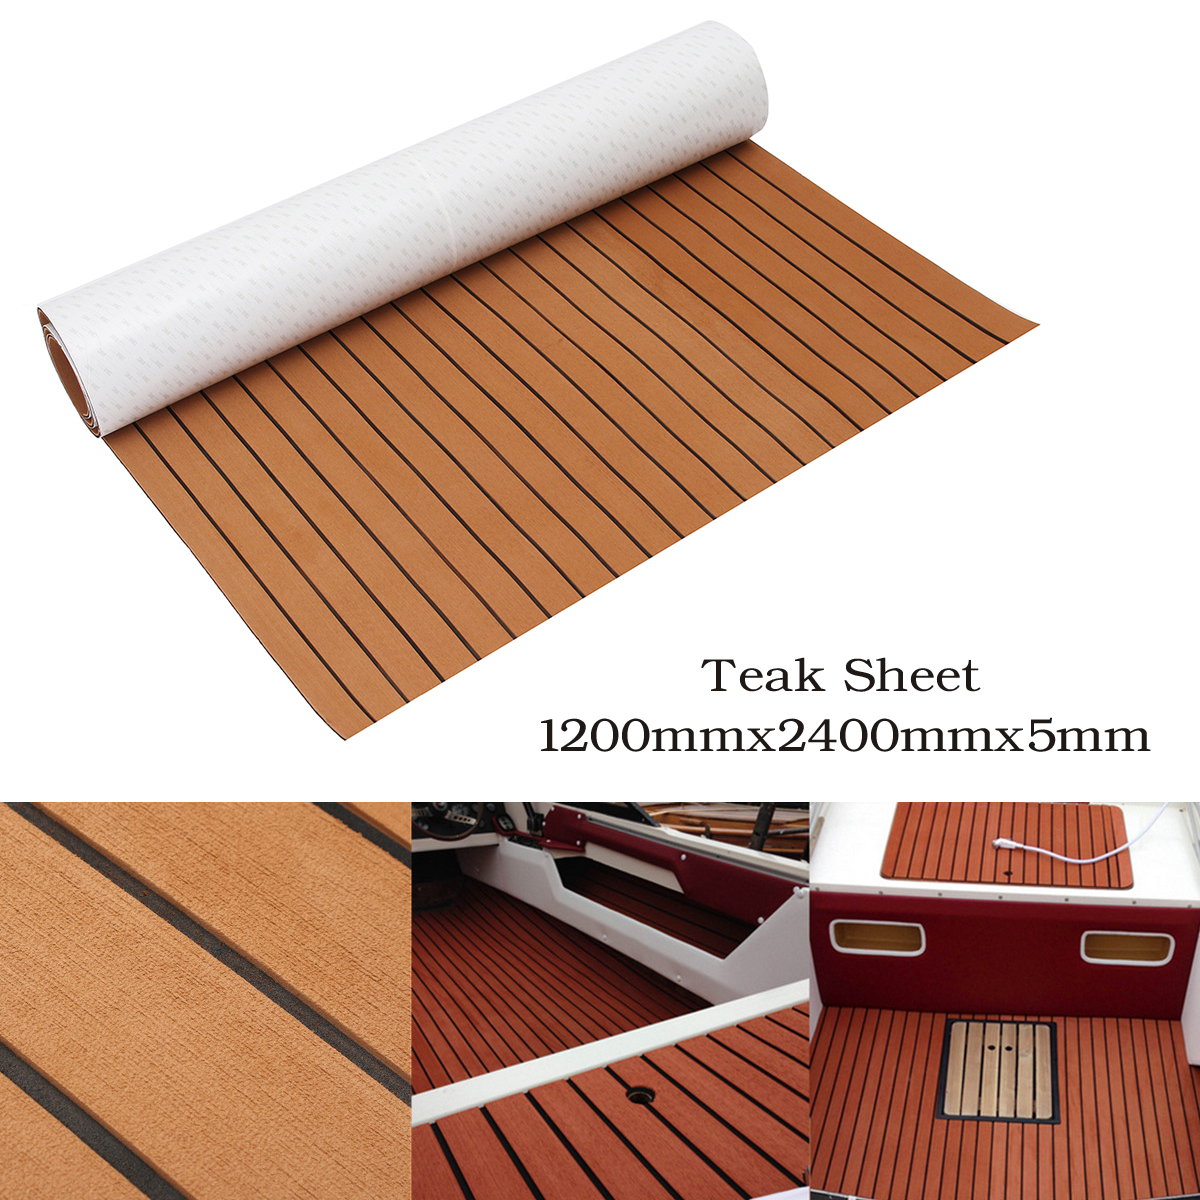 1200mmx2400mmx5mm Self Adhesive EVA Foam Faux Teak Sheet Boat Yacht Synthetic Teak Decking Floor Mat Brown teak house комод maori